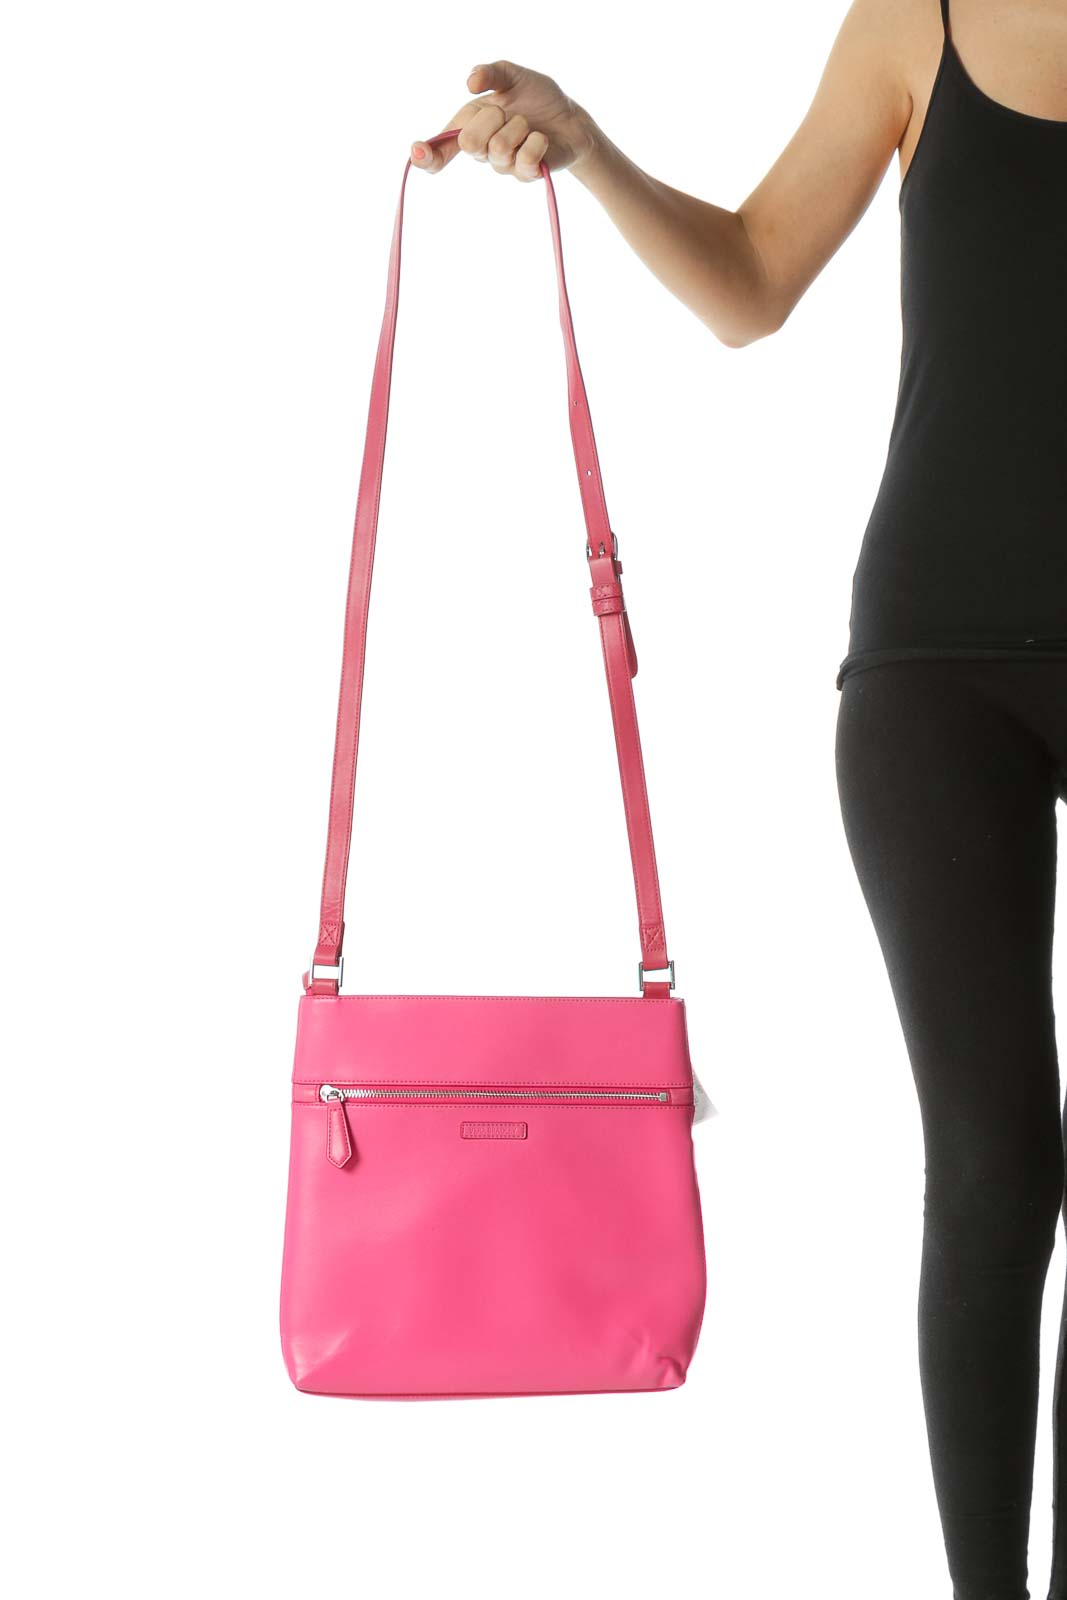 Hot Pink Color-Blocked Faux-Leather Tote